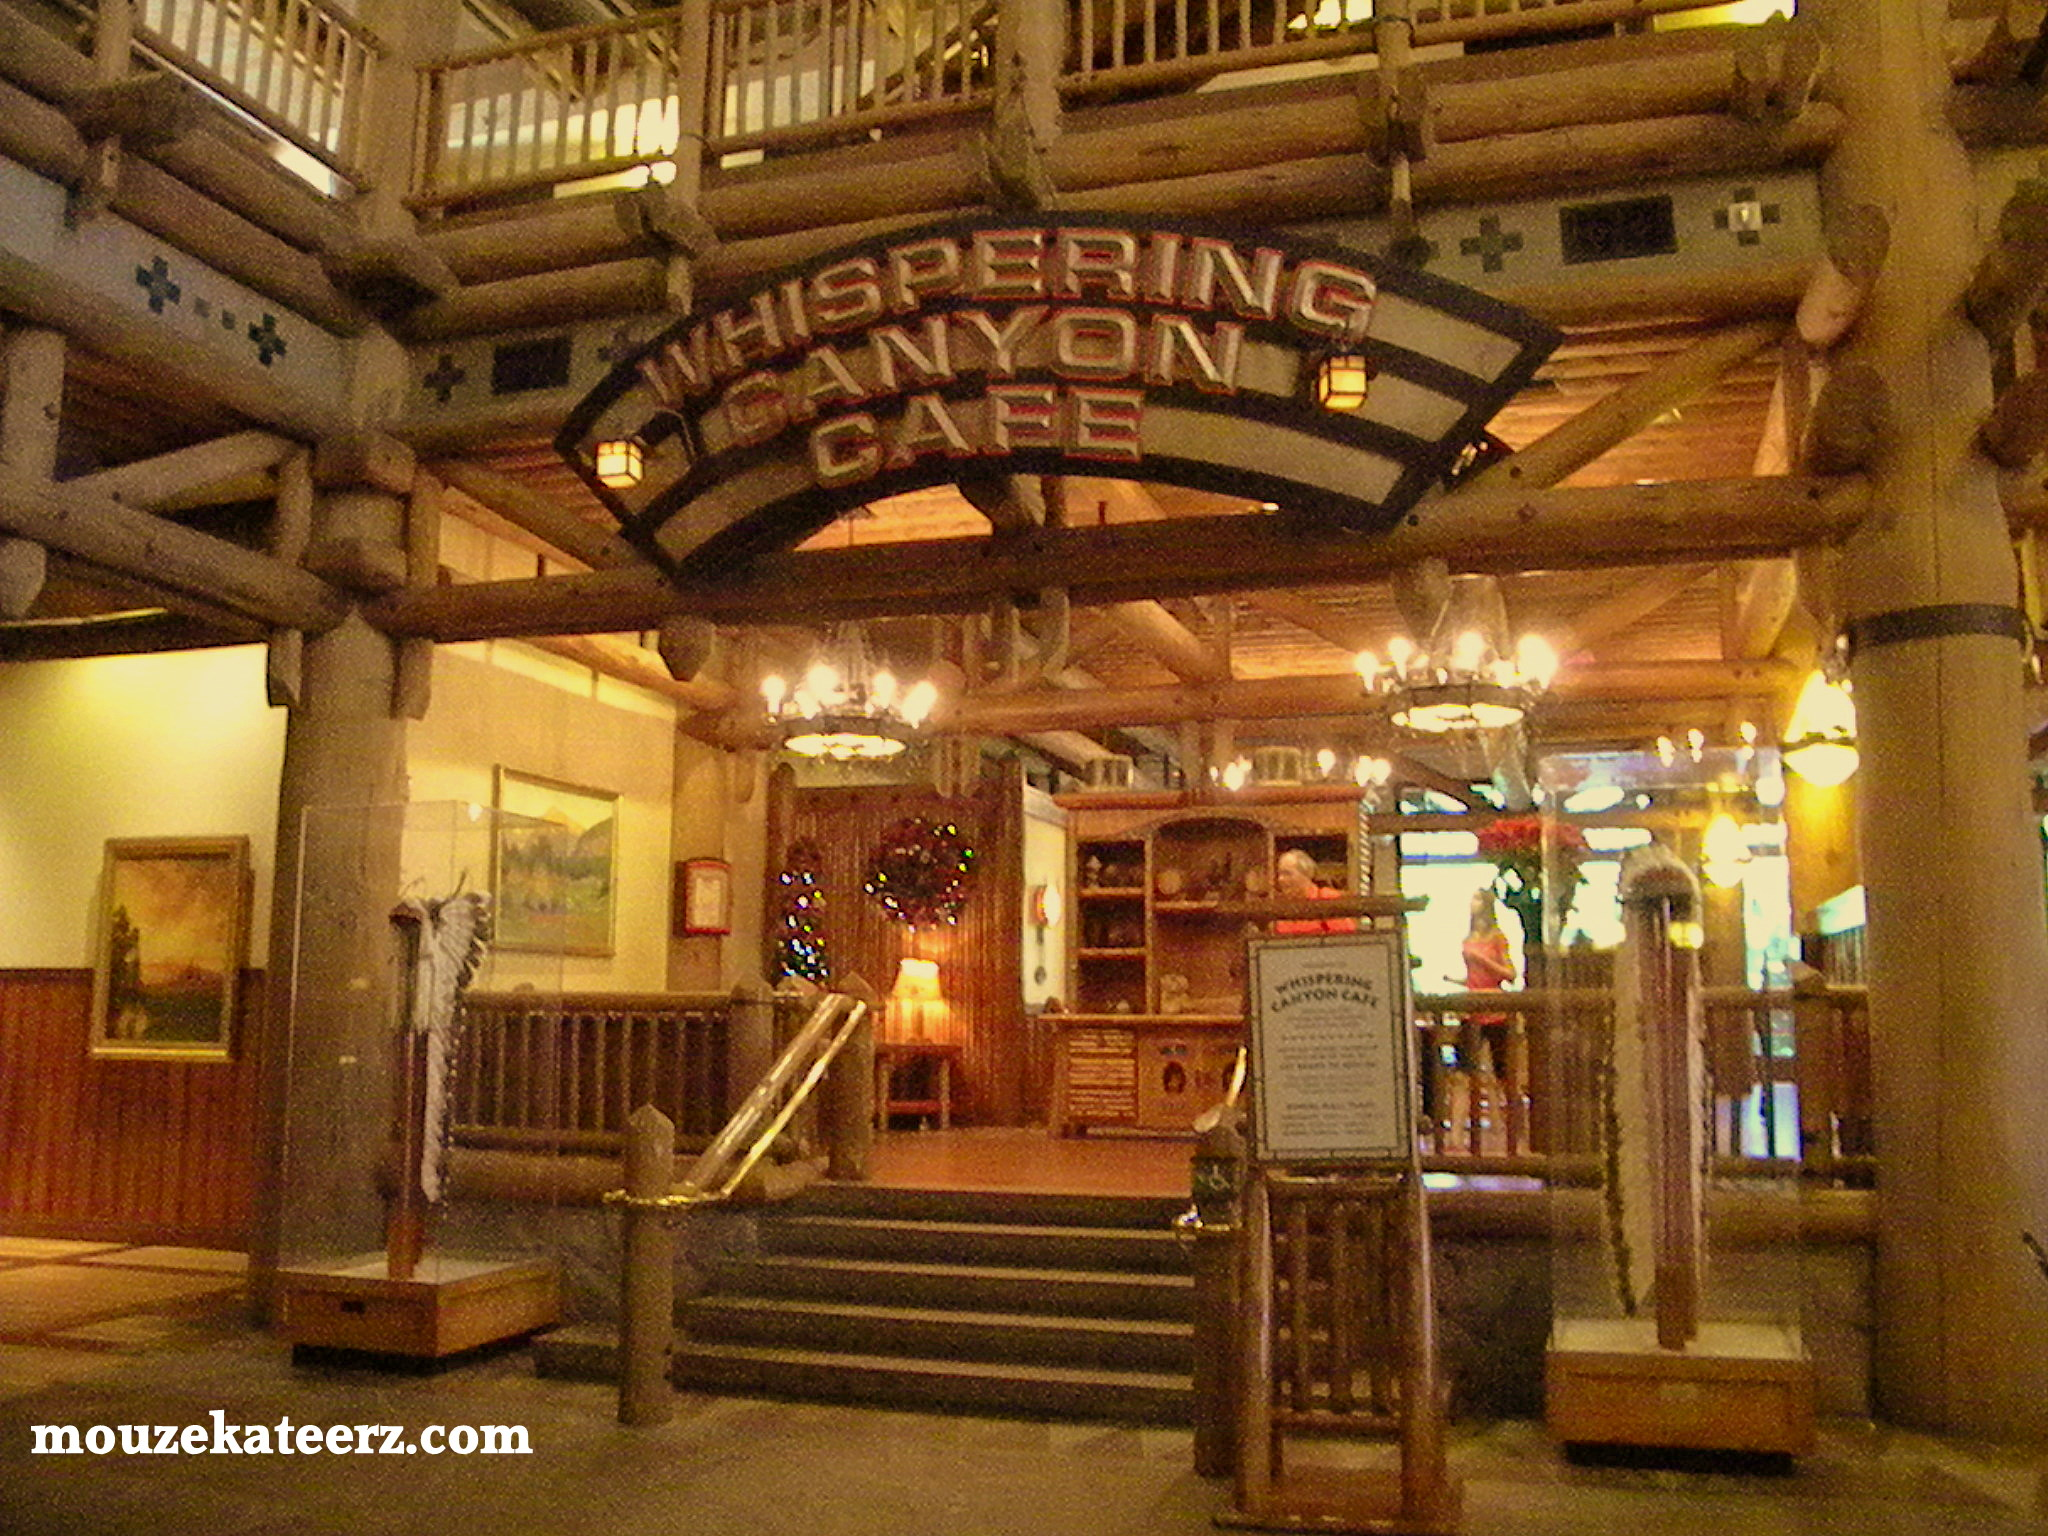 Whispering Canyon Cafe Prices